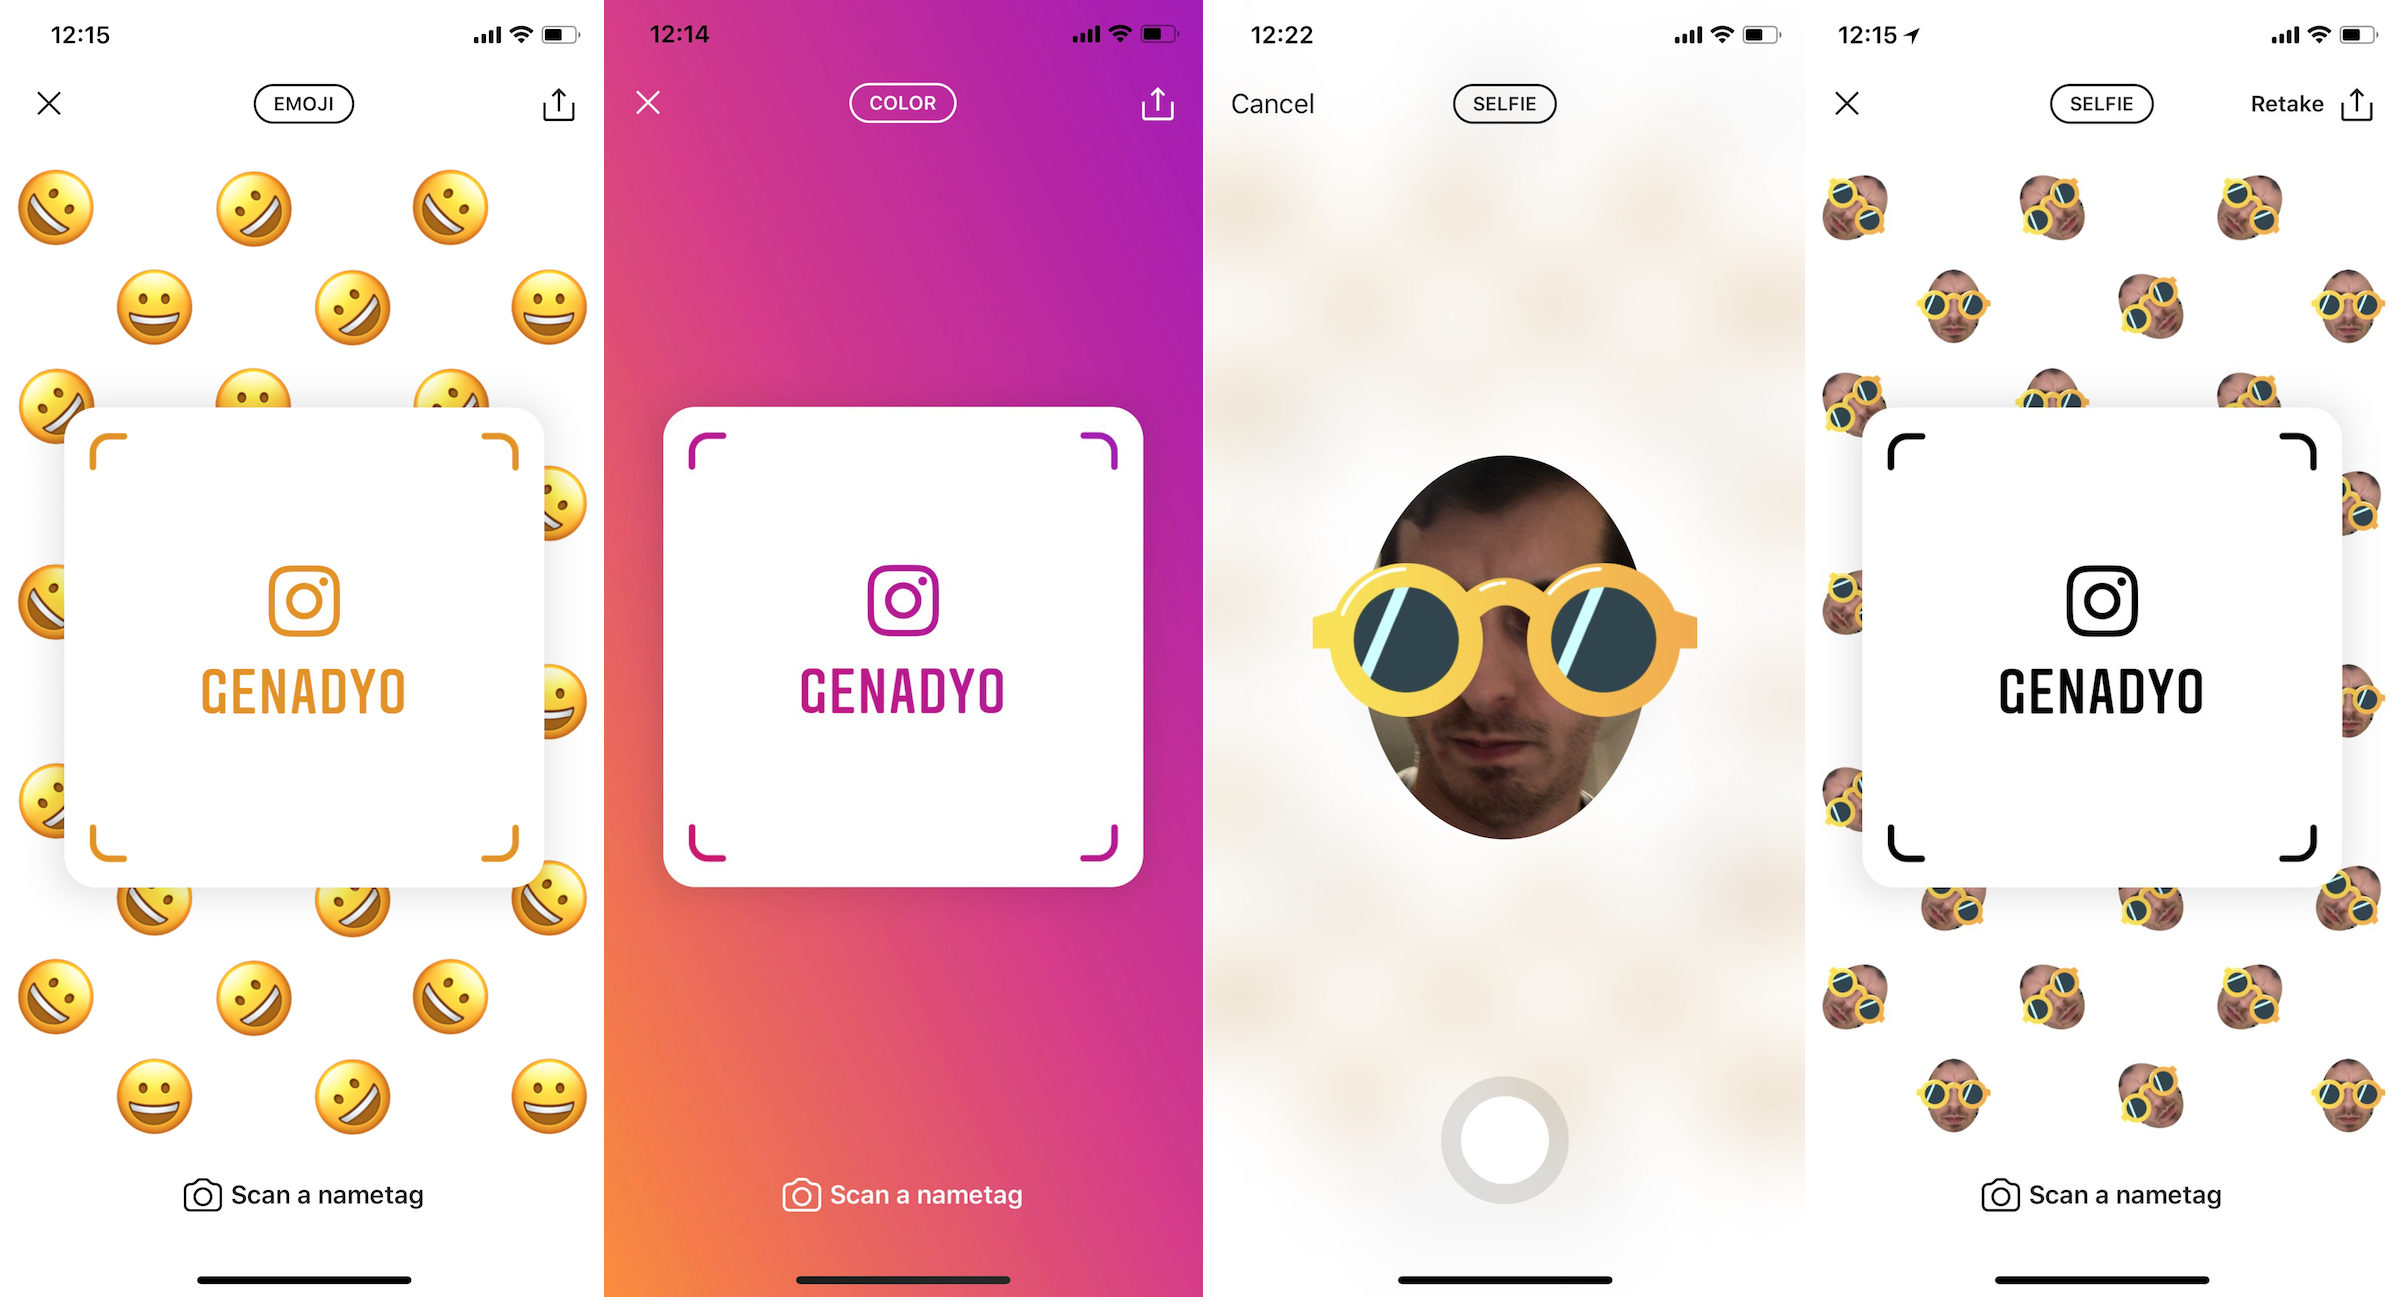 You could soon follow Instagrammers by scanning their Nametag